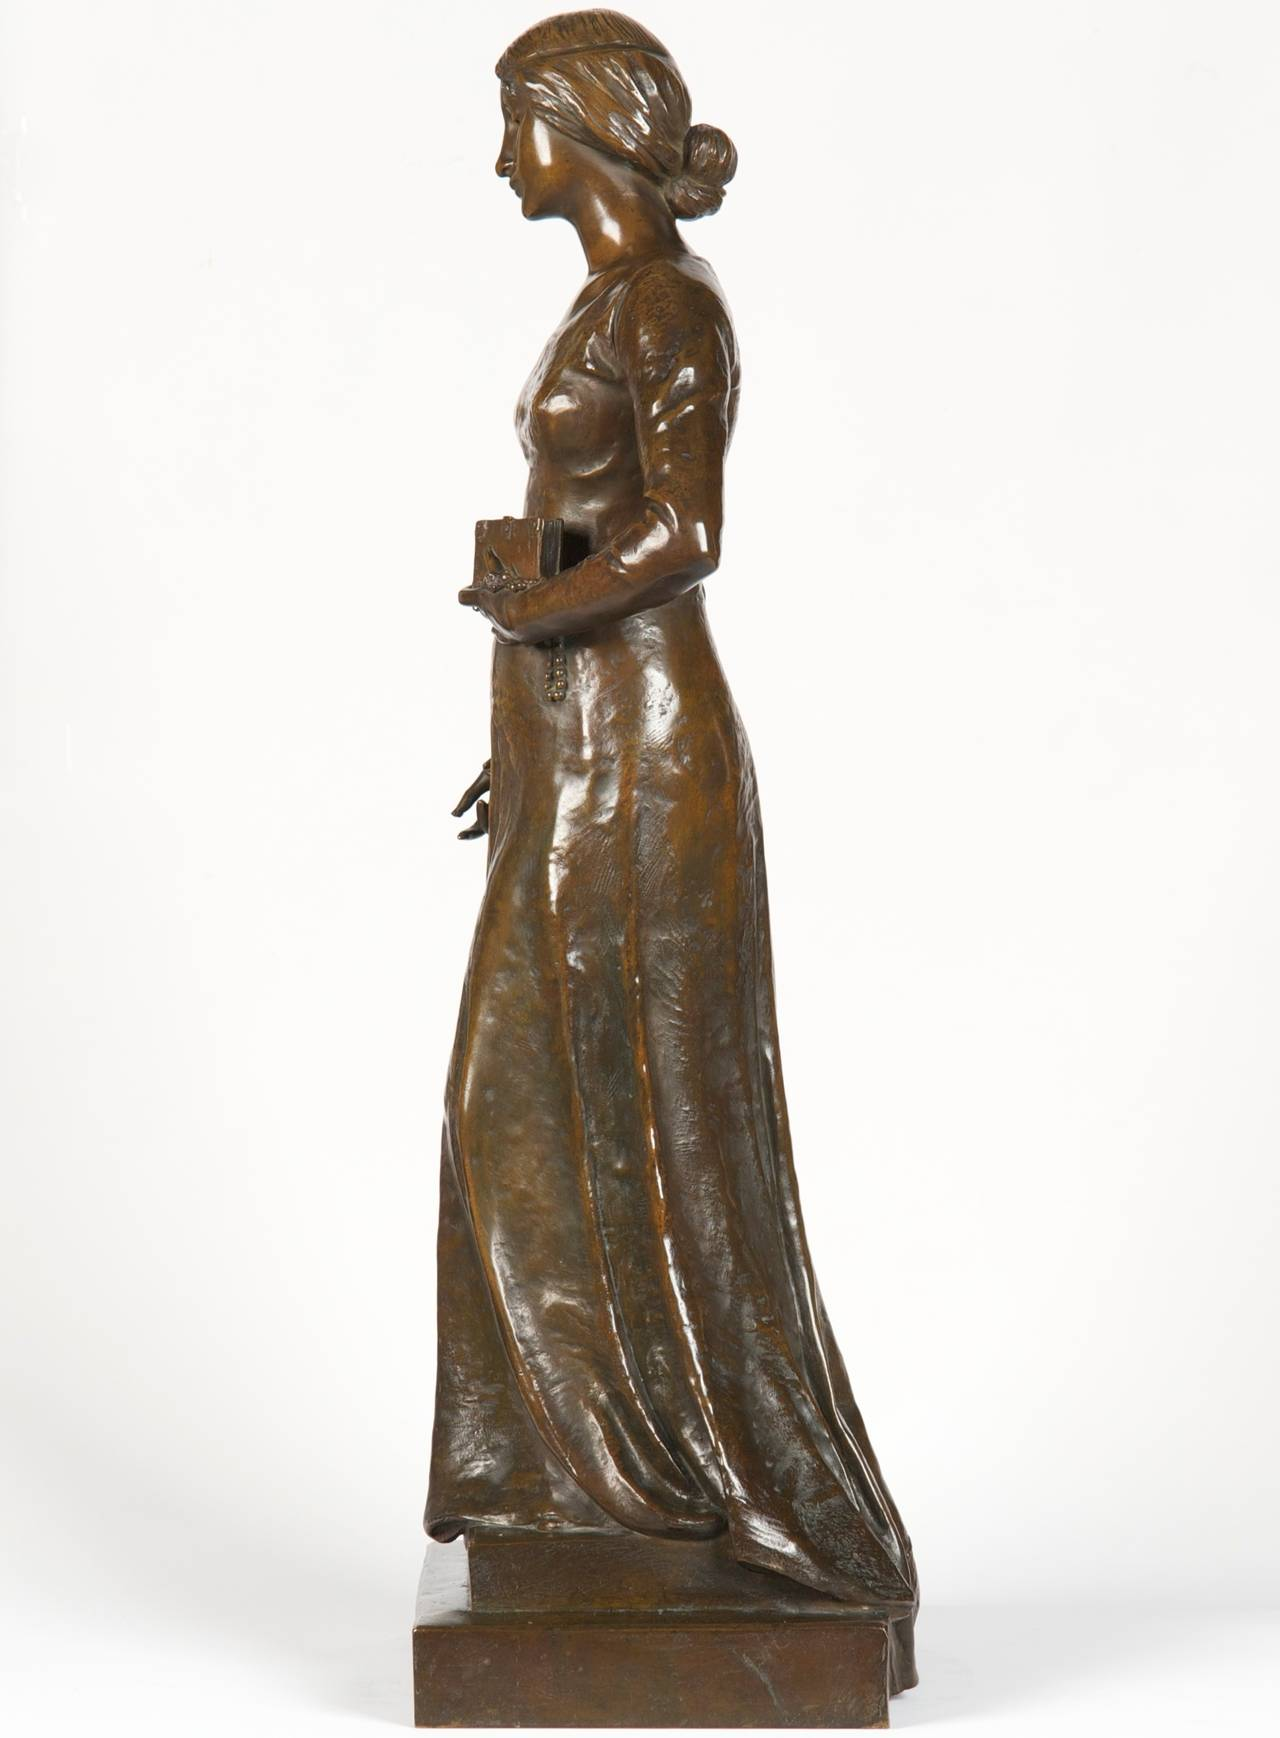 20th Century Henri Levasseur Antique French Bronze Sculpture of Maiden with Rosary, 1900